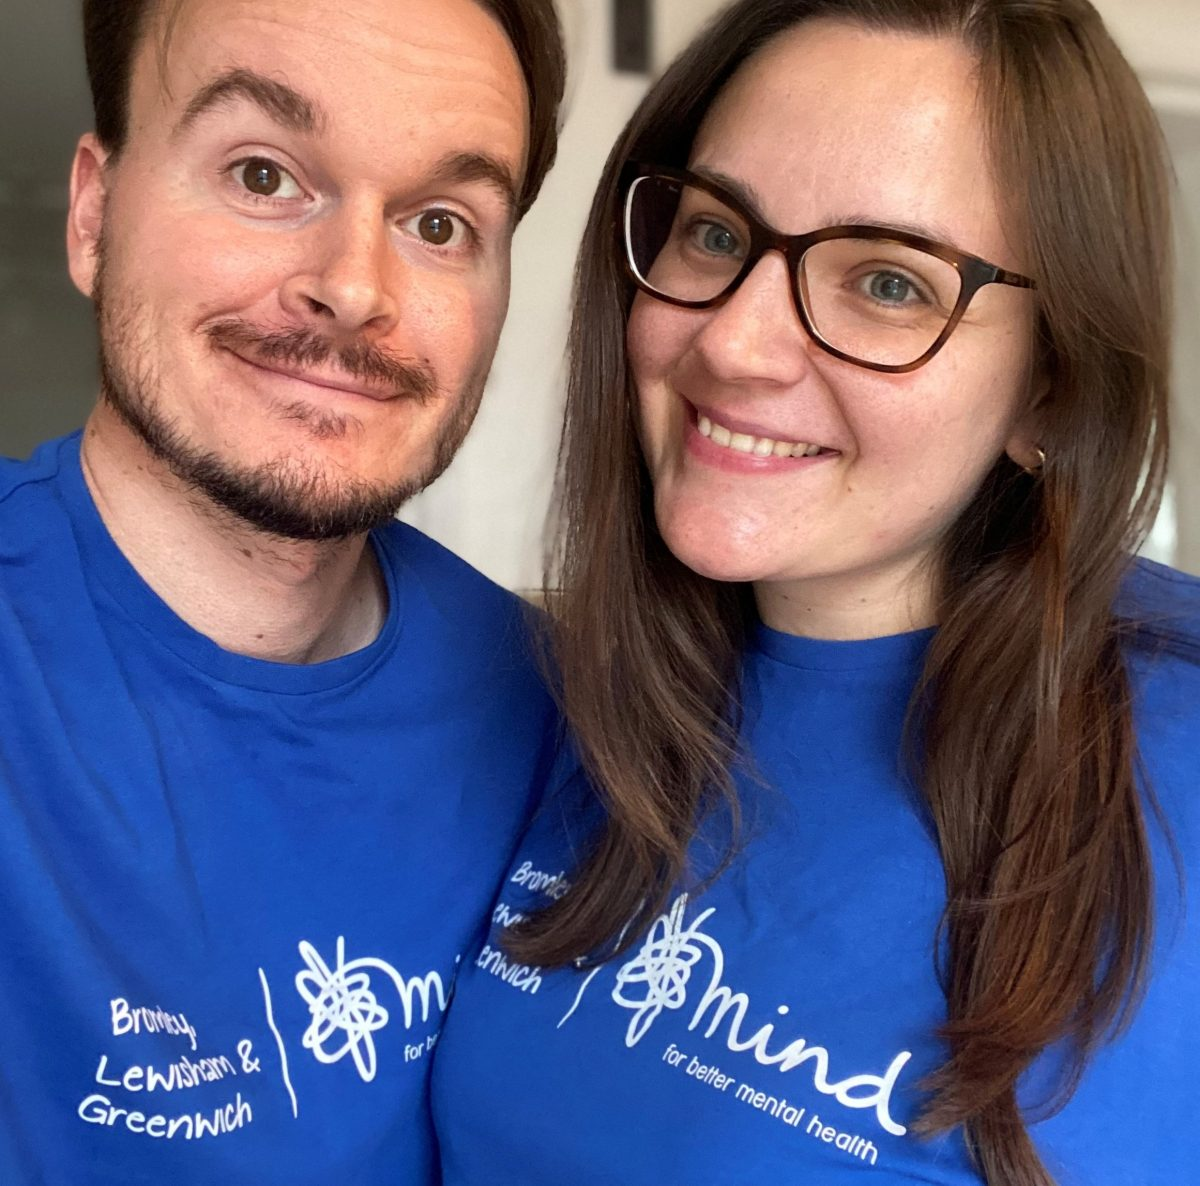 Gracie and her fiance Michael, who are running the virtula London marathon for BLG Mind